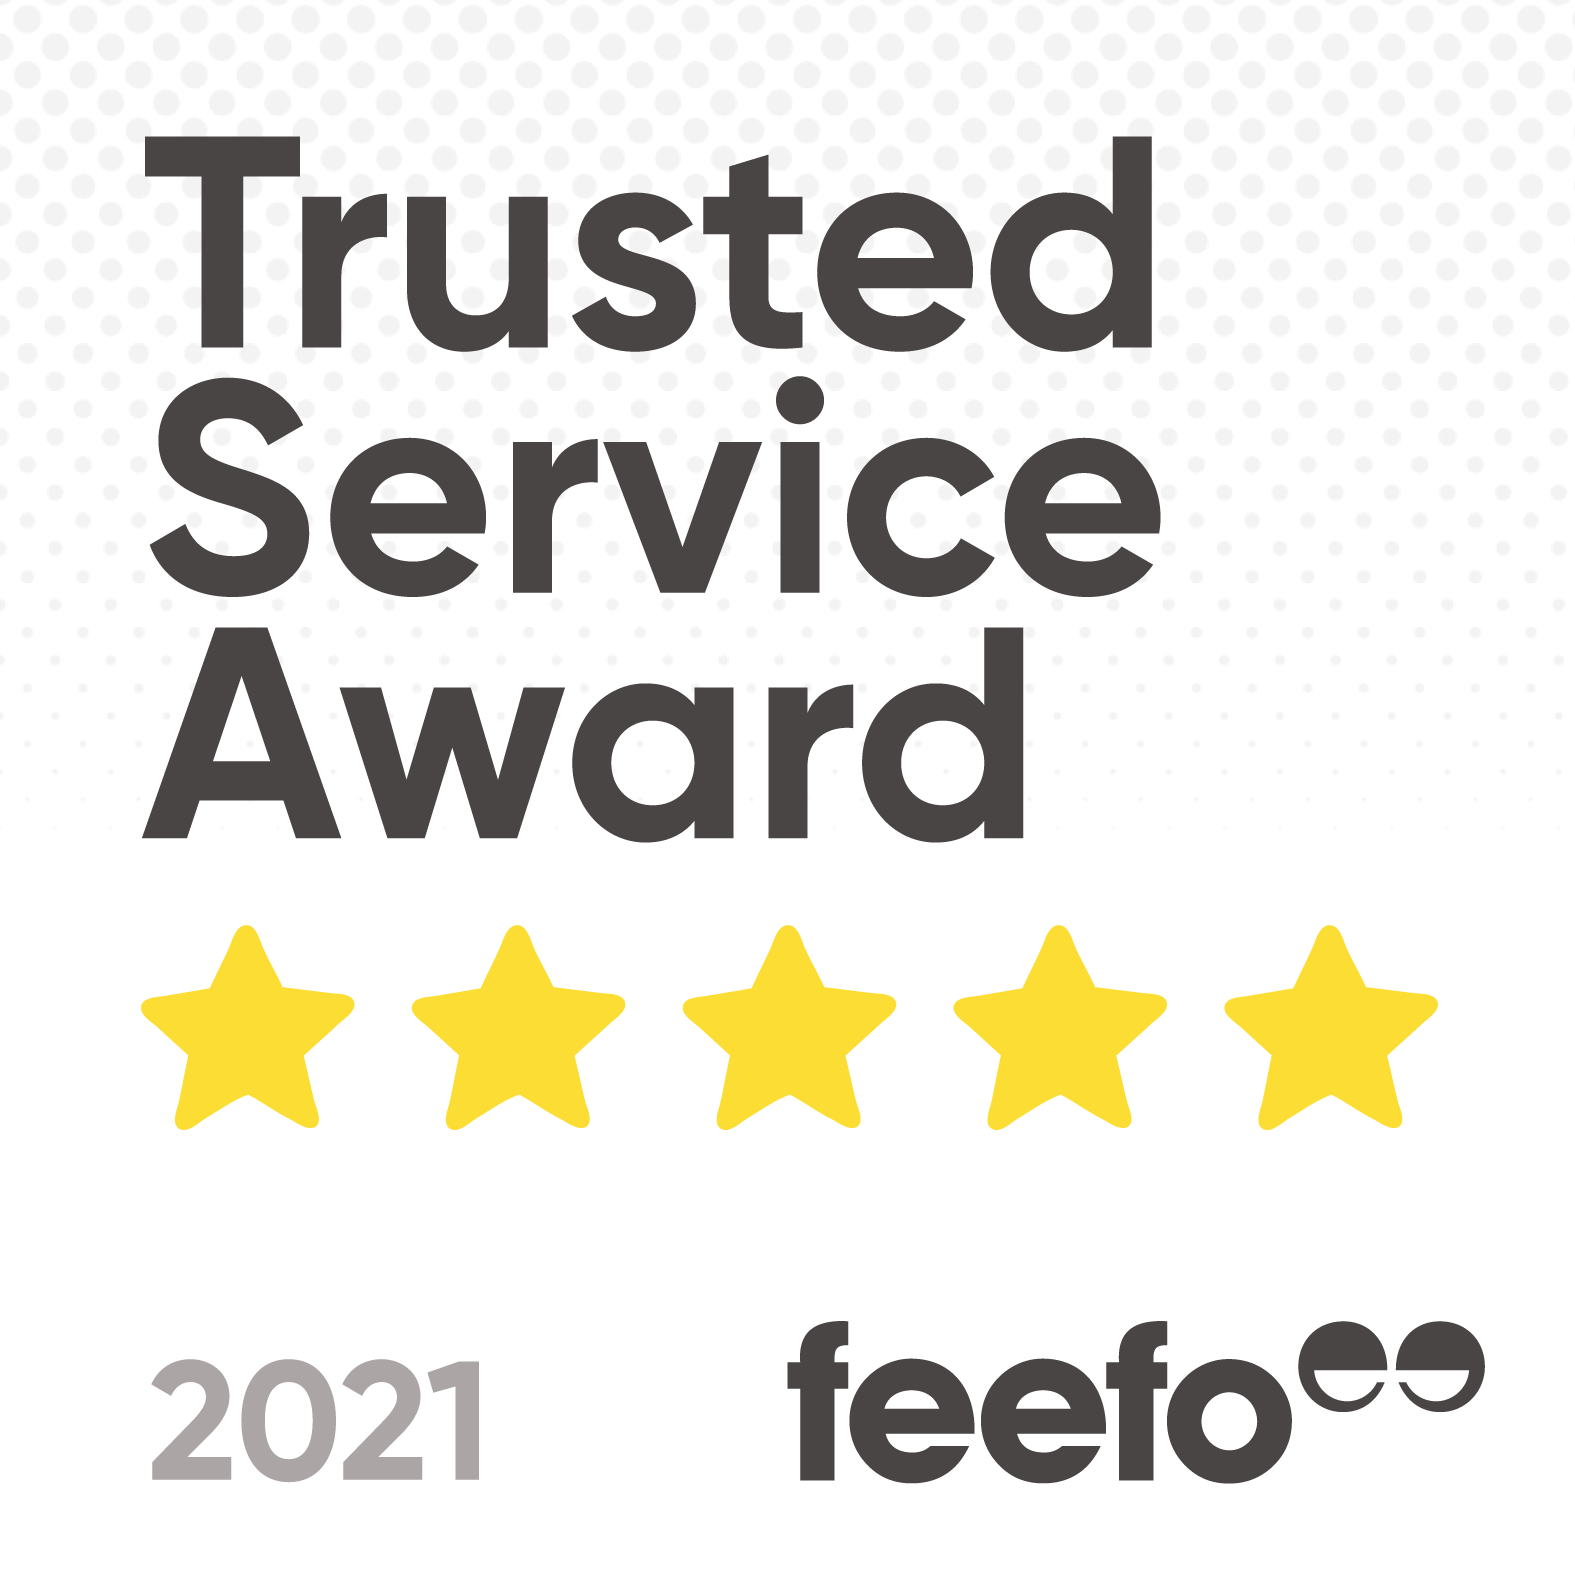 Feefo Trusted Service Award 2021